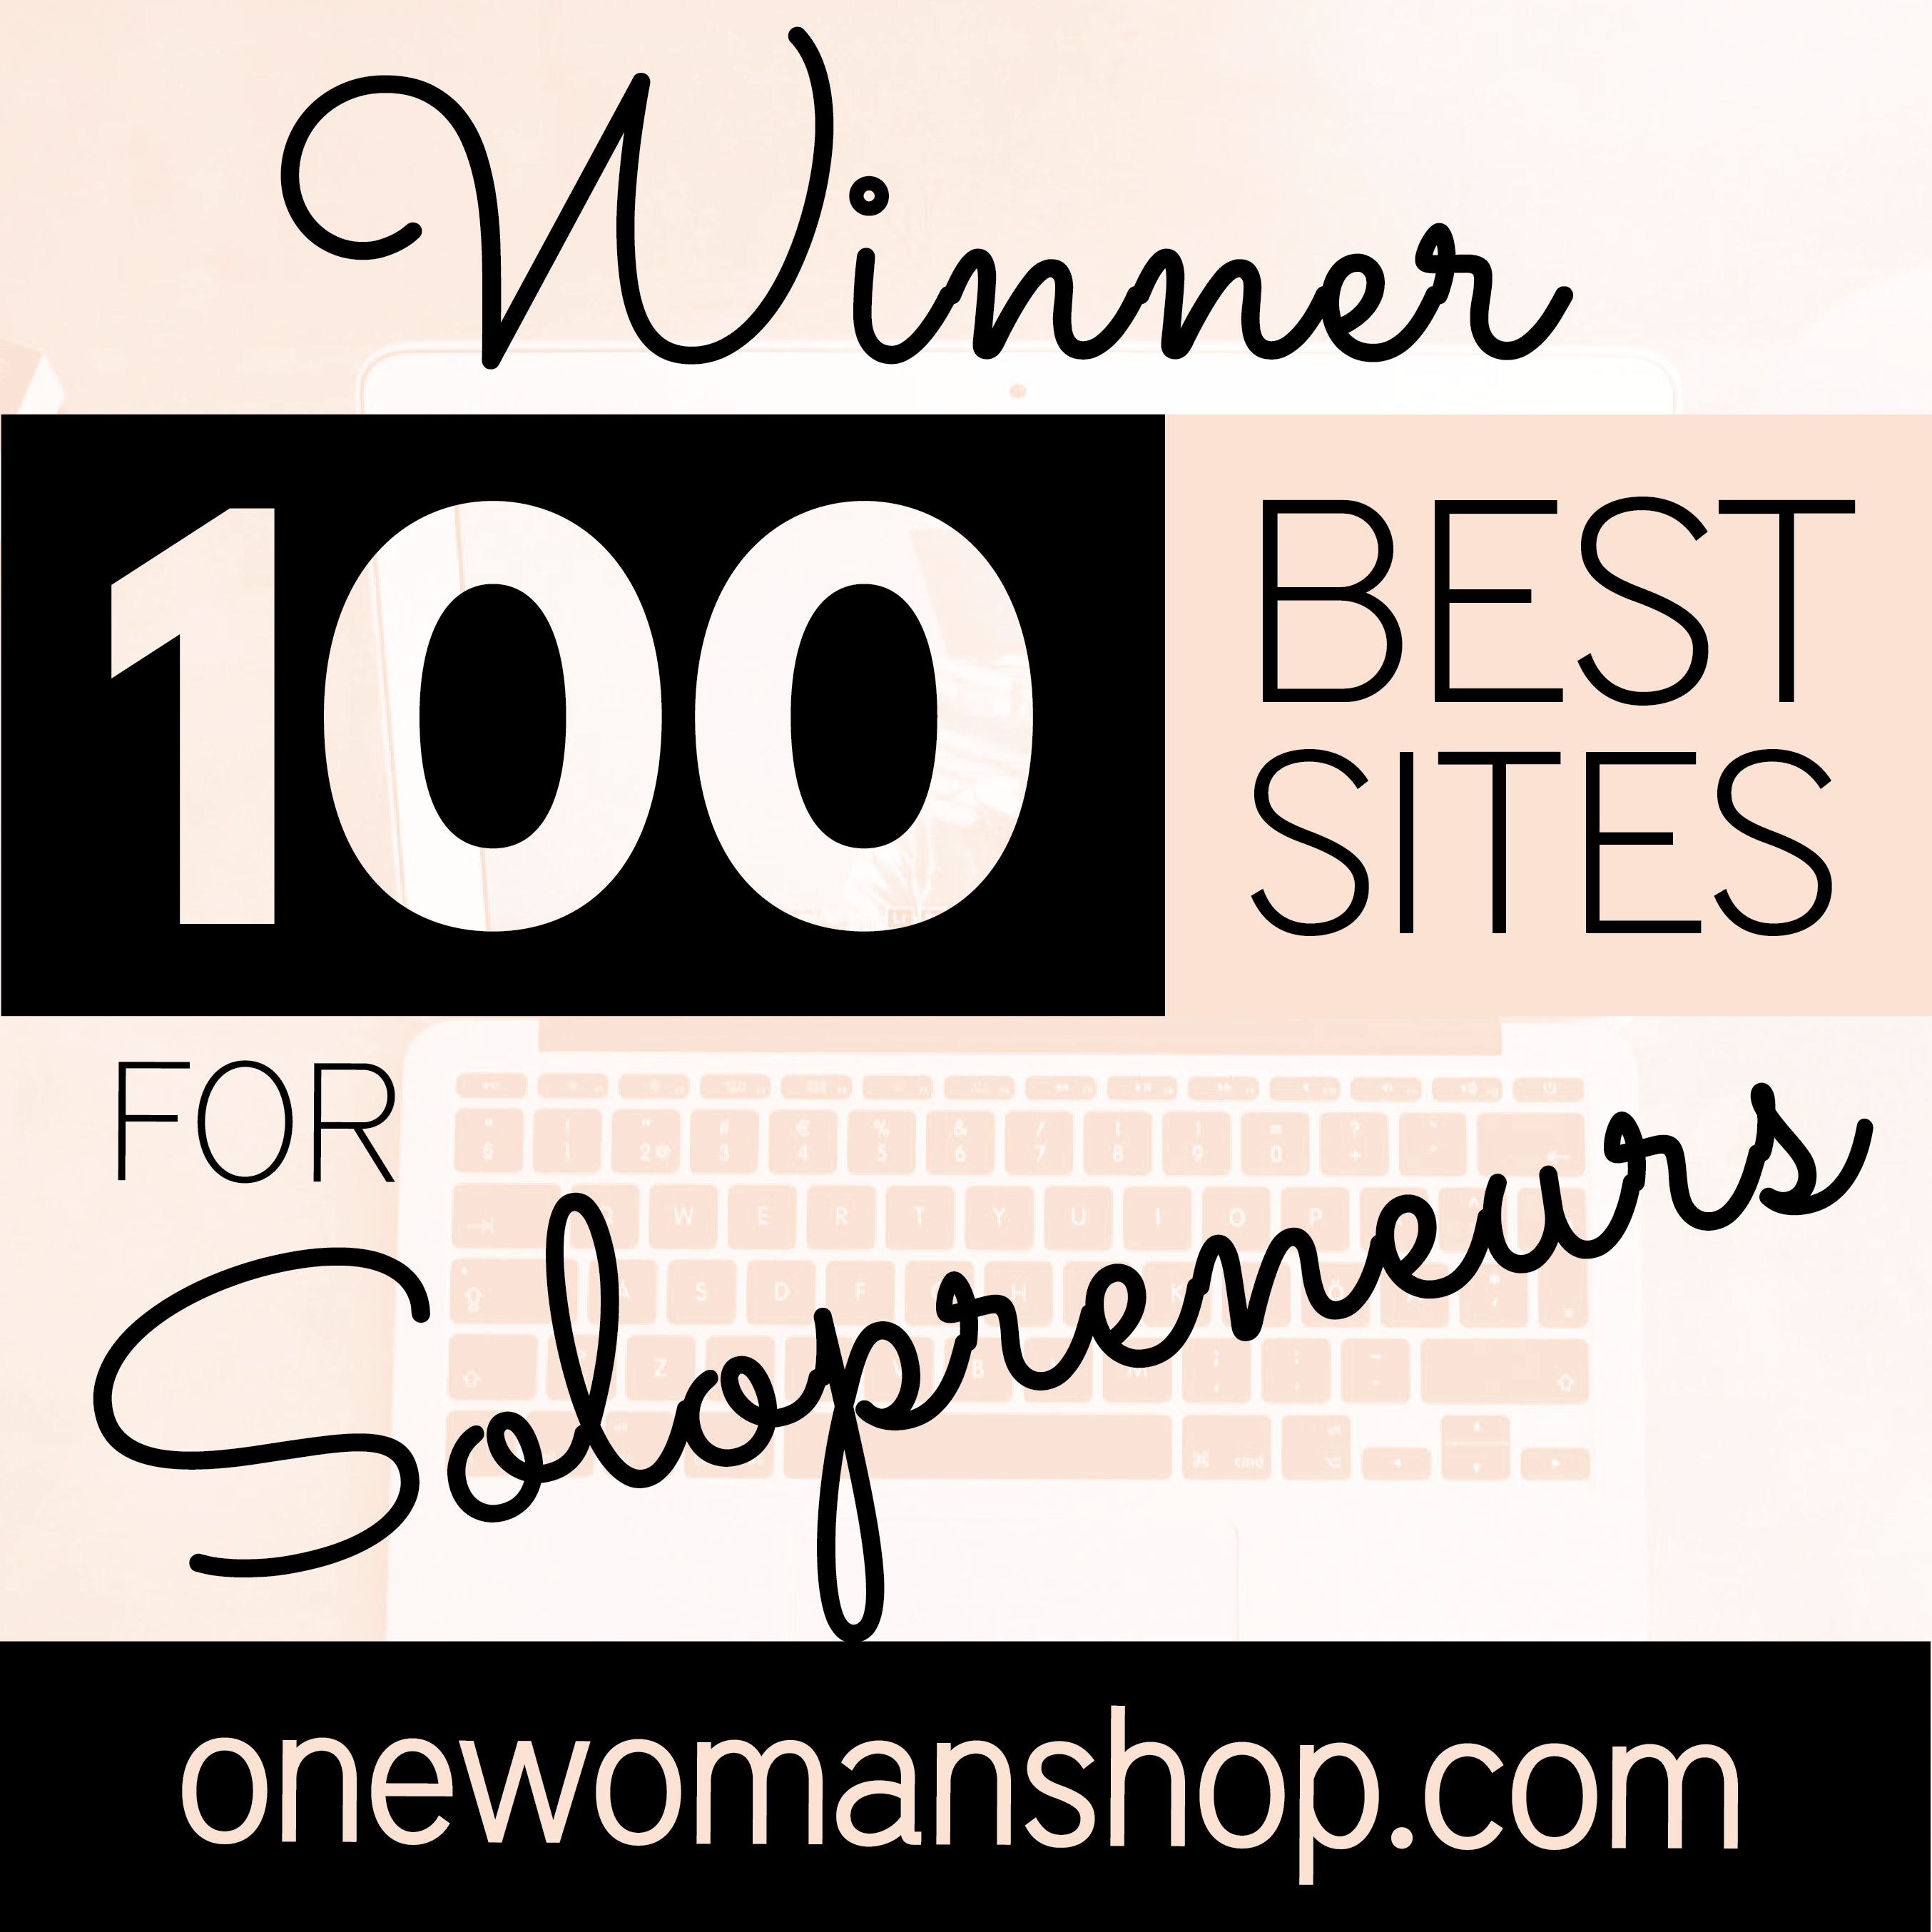 100-BEST-WEBSITES-solopreneurs